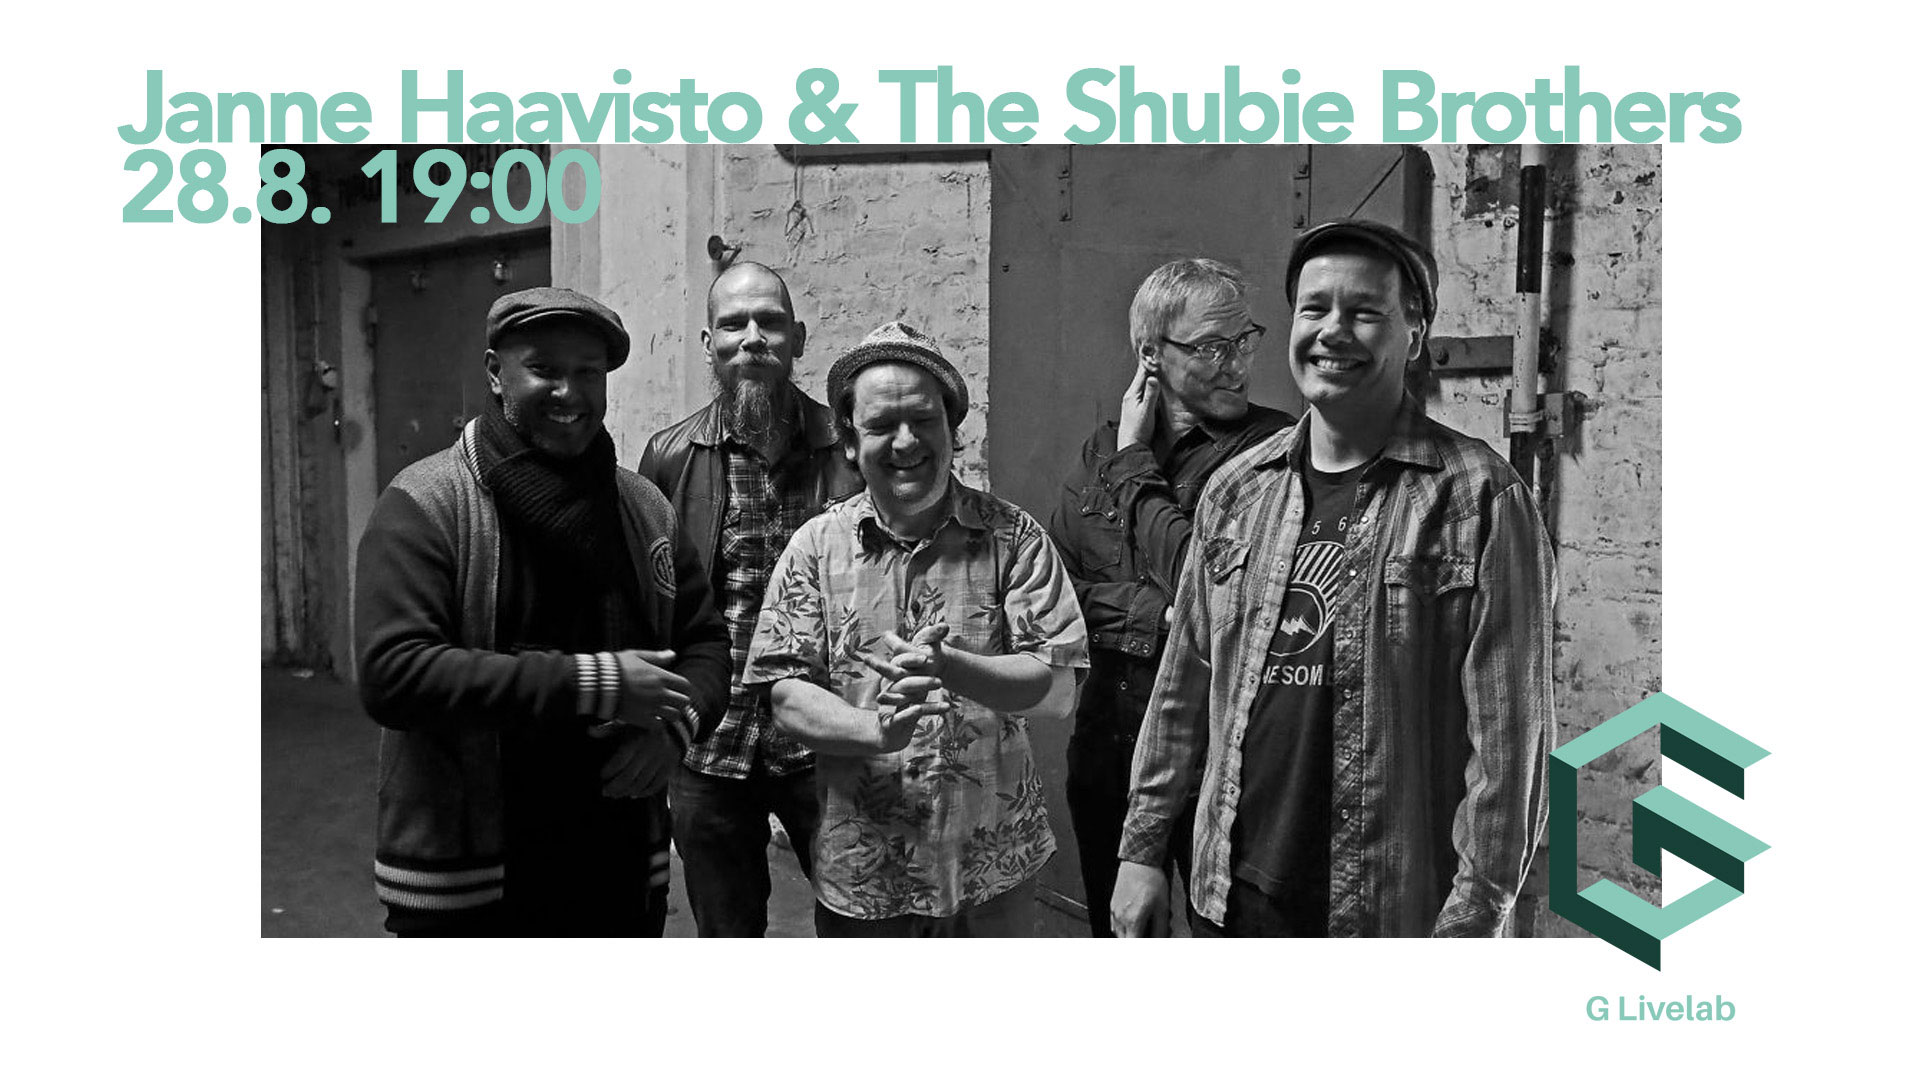 Link to event Janne Haavisto & The Shubie Brothers